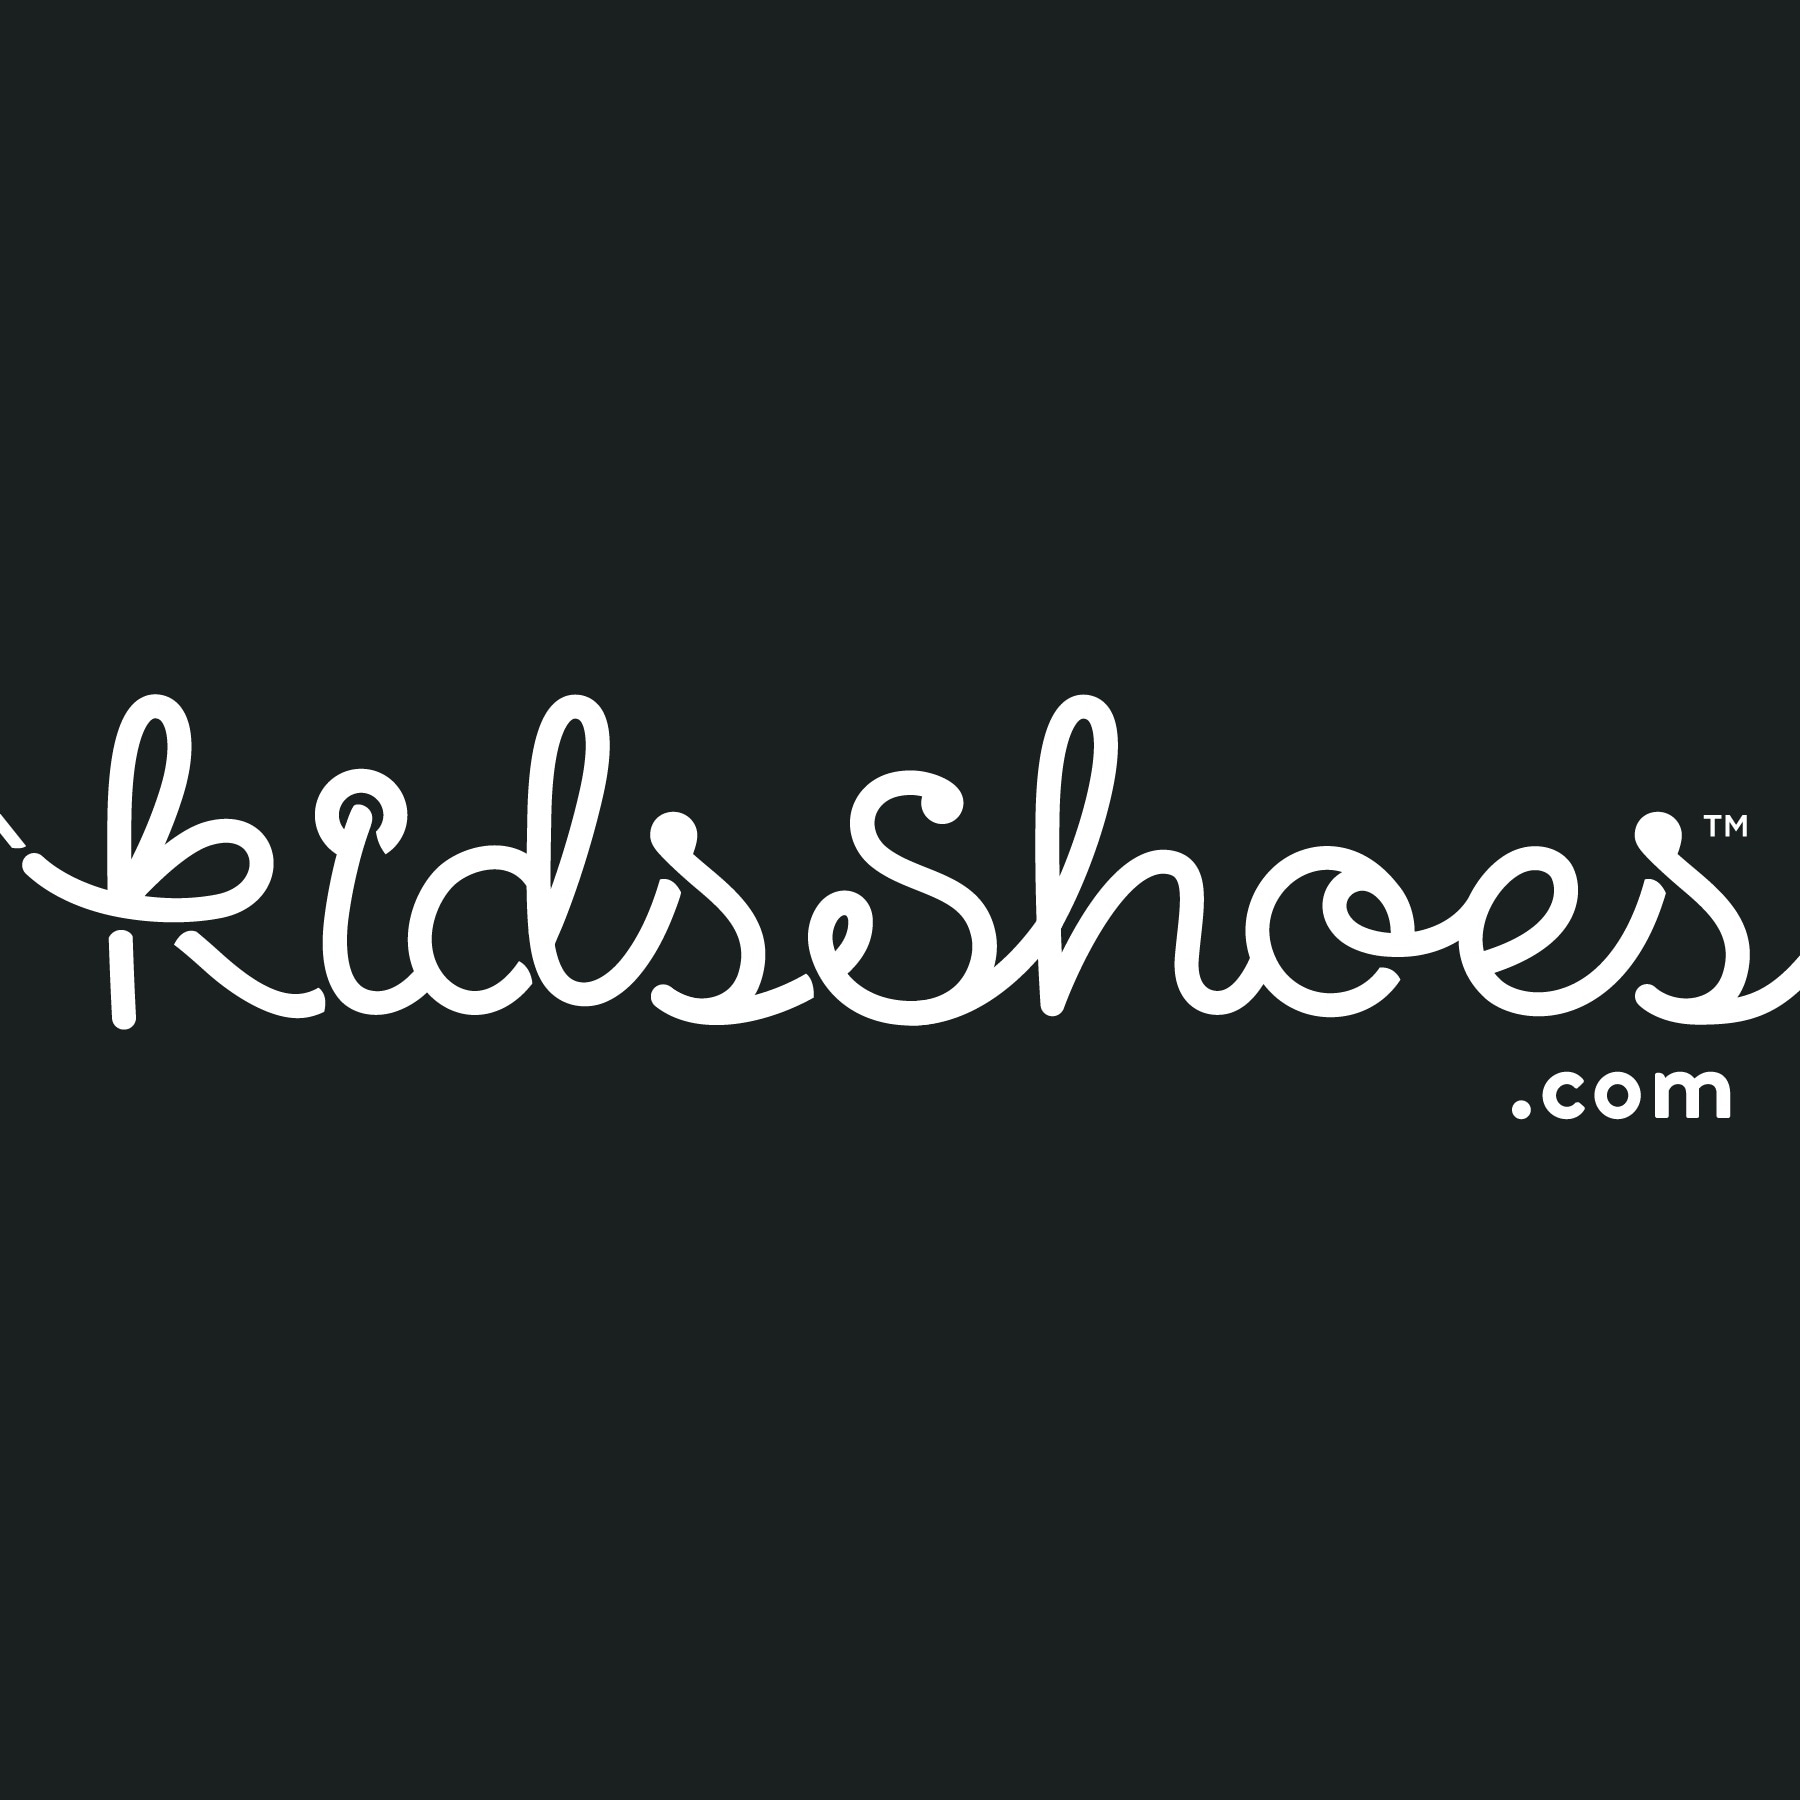 @shopkidsshoes